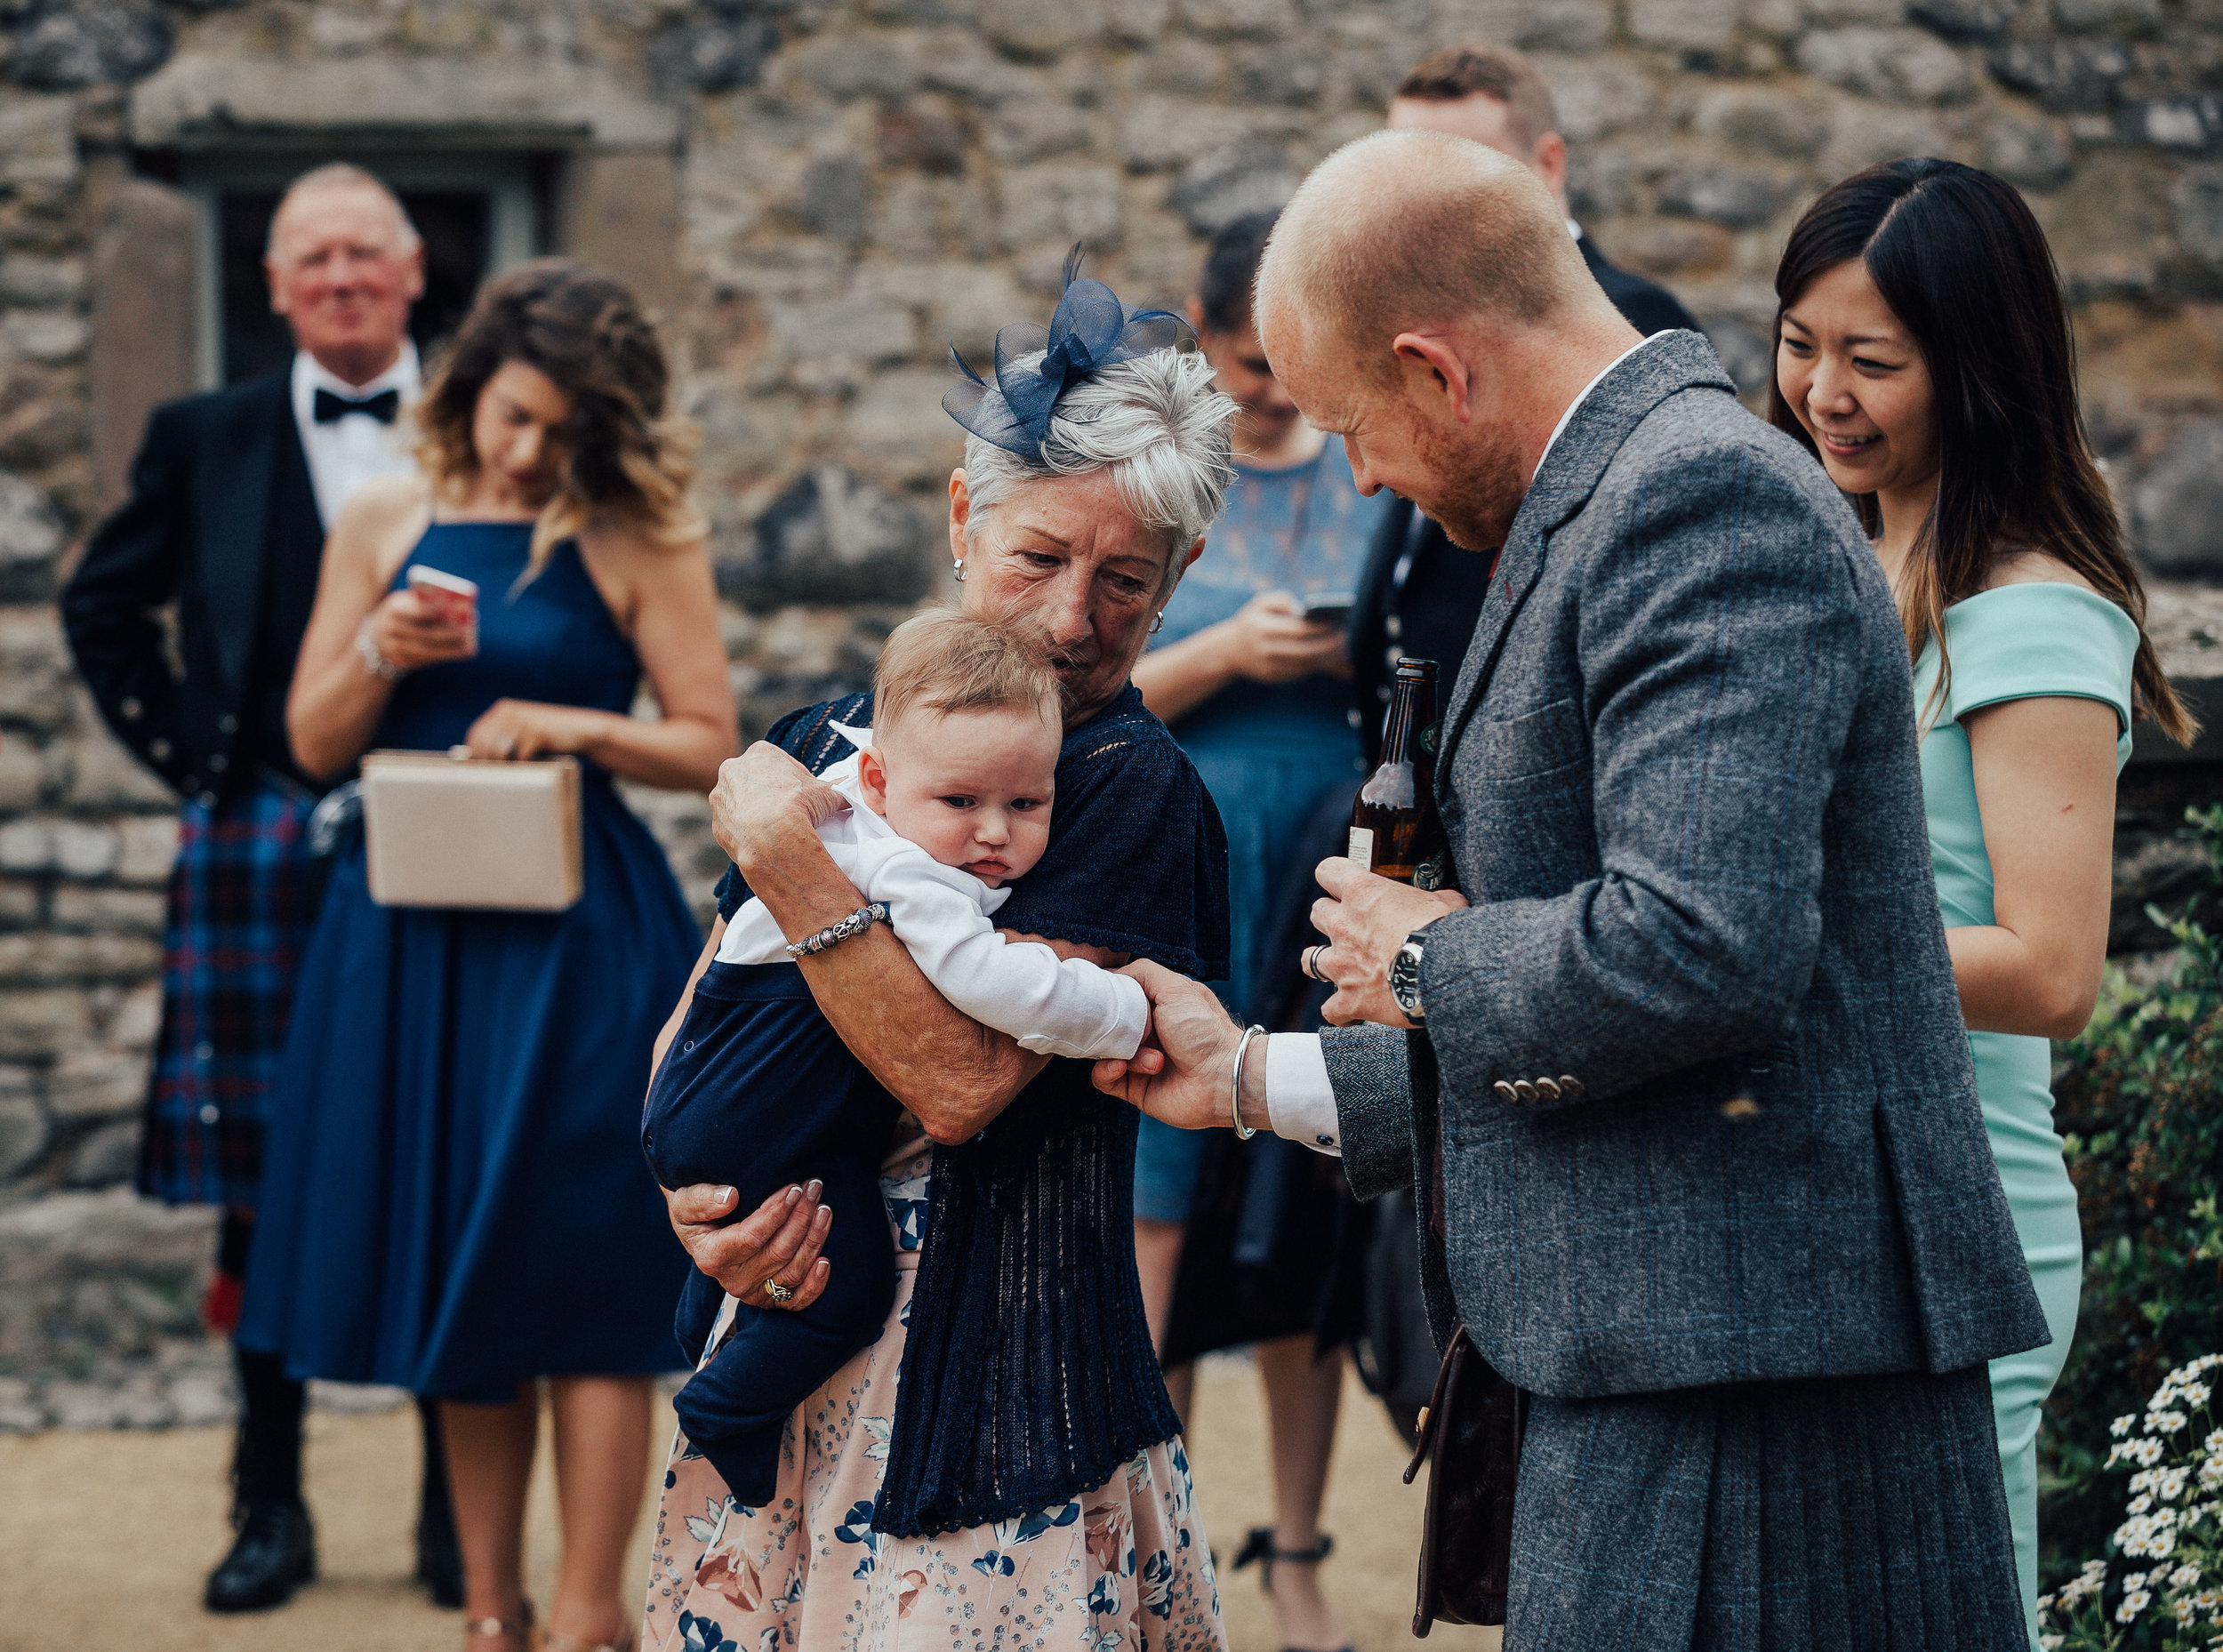 PJ_PHILLIPS_PHOTOGRAPHY_EDINBURGH_WEDDERBURN_BARNS_WEDDING_EDINBURGH_WEDDING_PHOTOGRAPHER_105.jpg